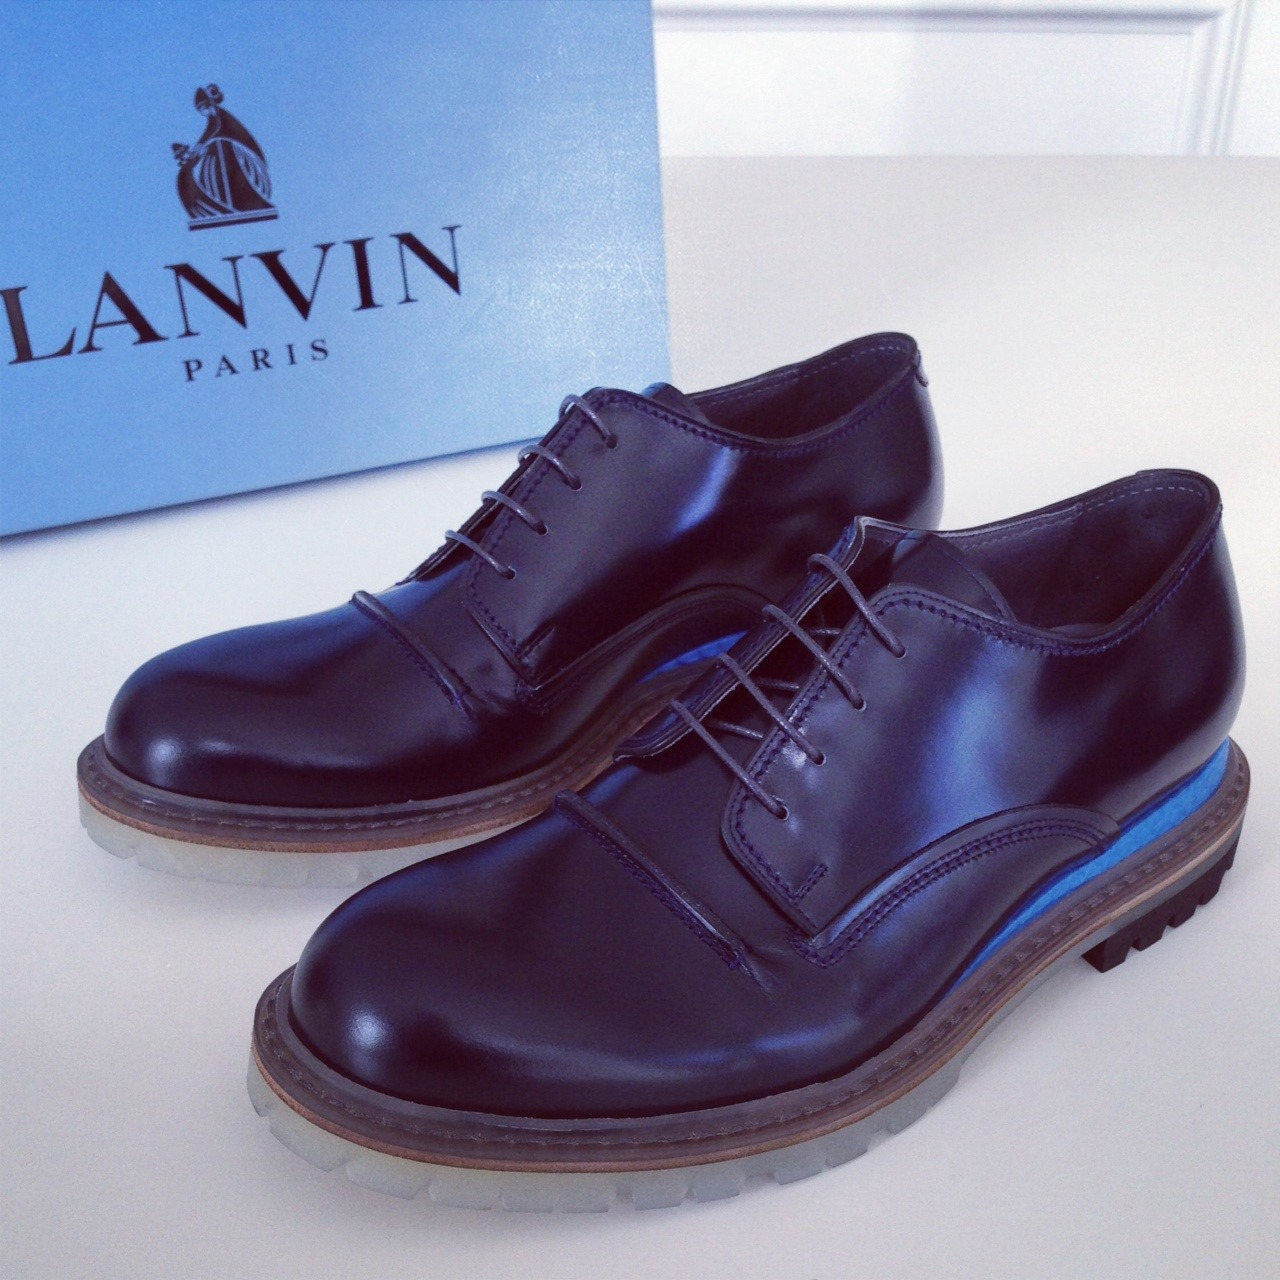 The Lanvin Derby | Now Available On Site